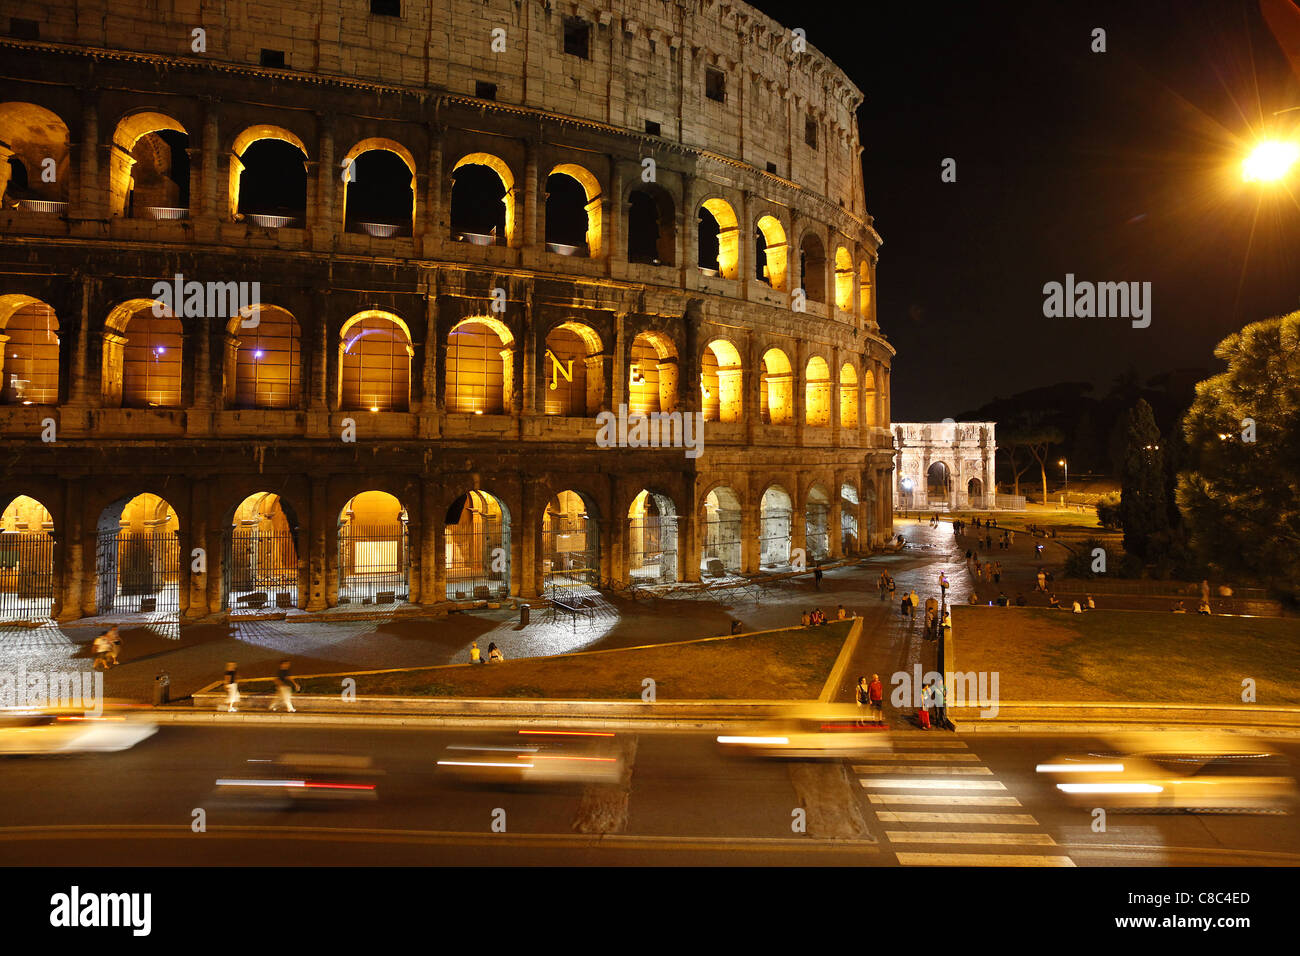 Traffic passing the Colosseum in Rome, Italy. - Stock Image